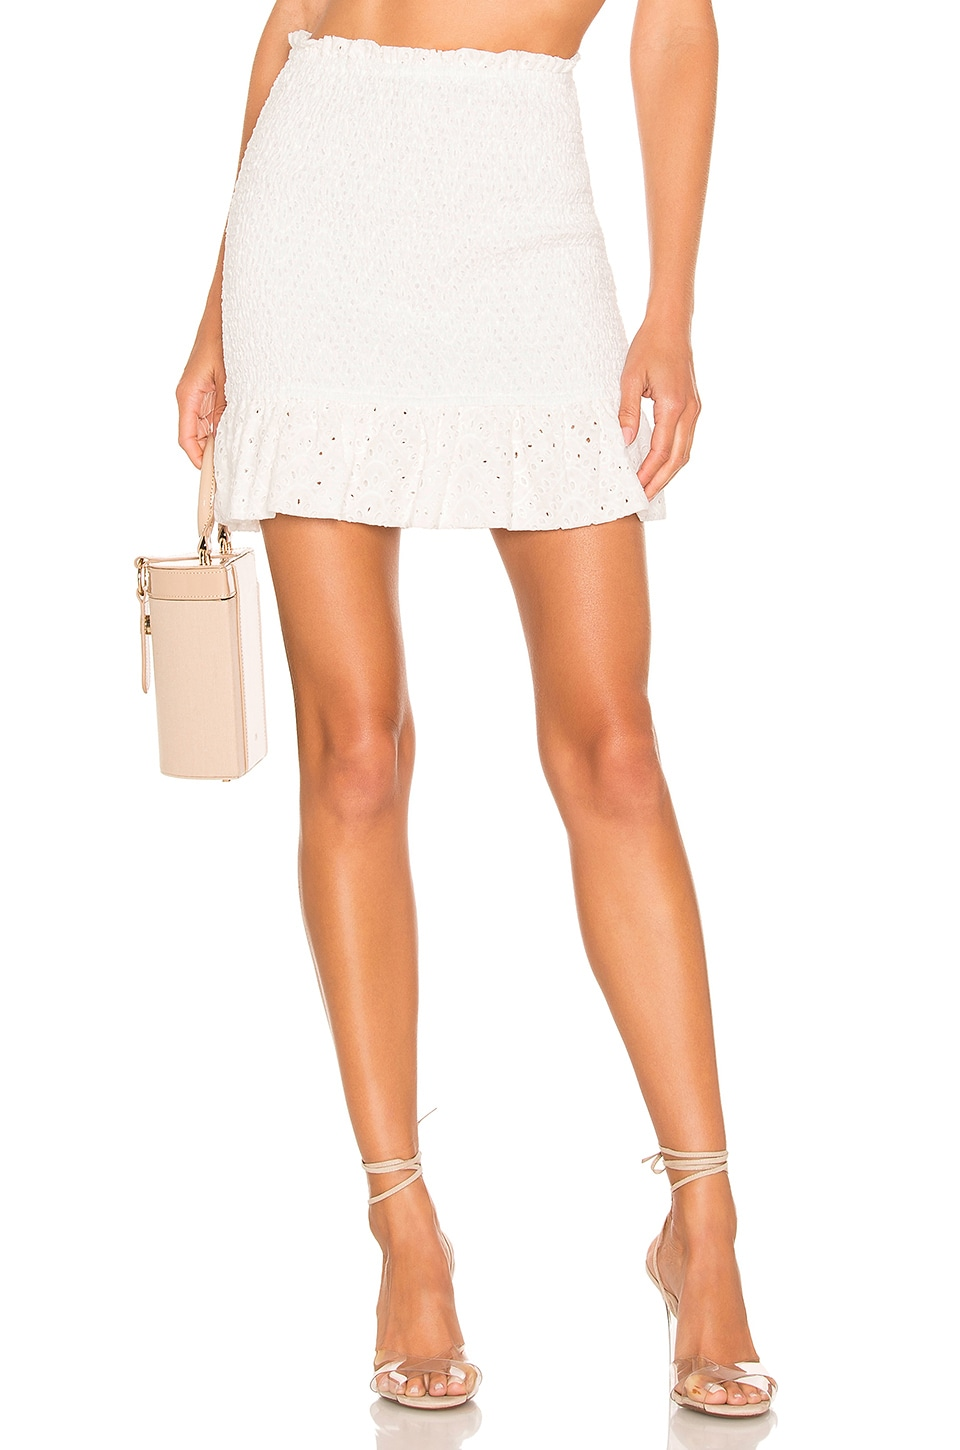 Lovers + Friends Cecile Mini Skirt in White